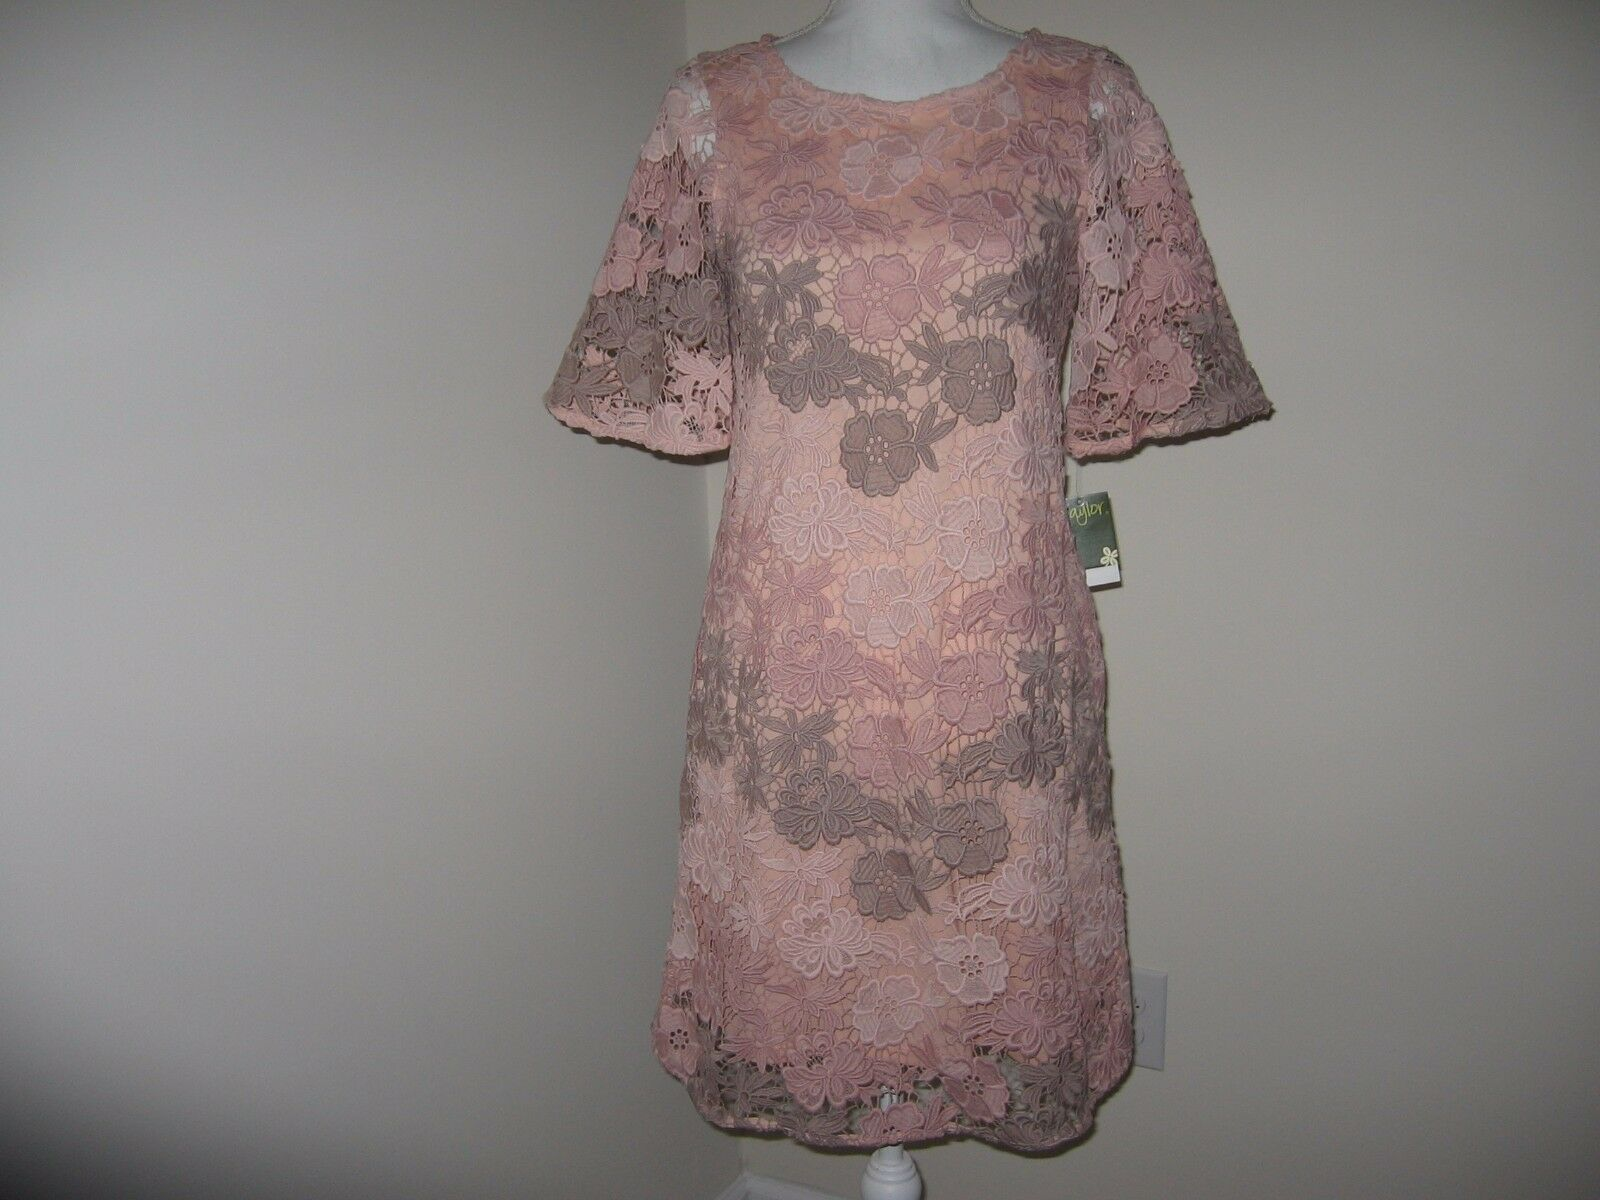 Taylor Short Sleeve Lace Dress for Woman Size 4 NWT